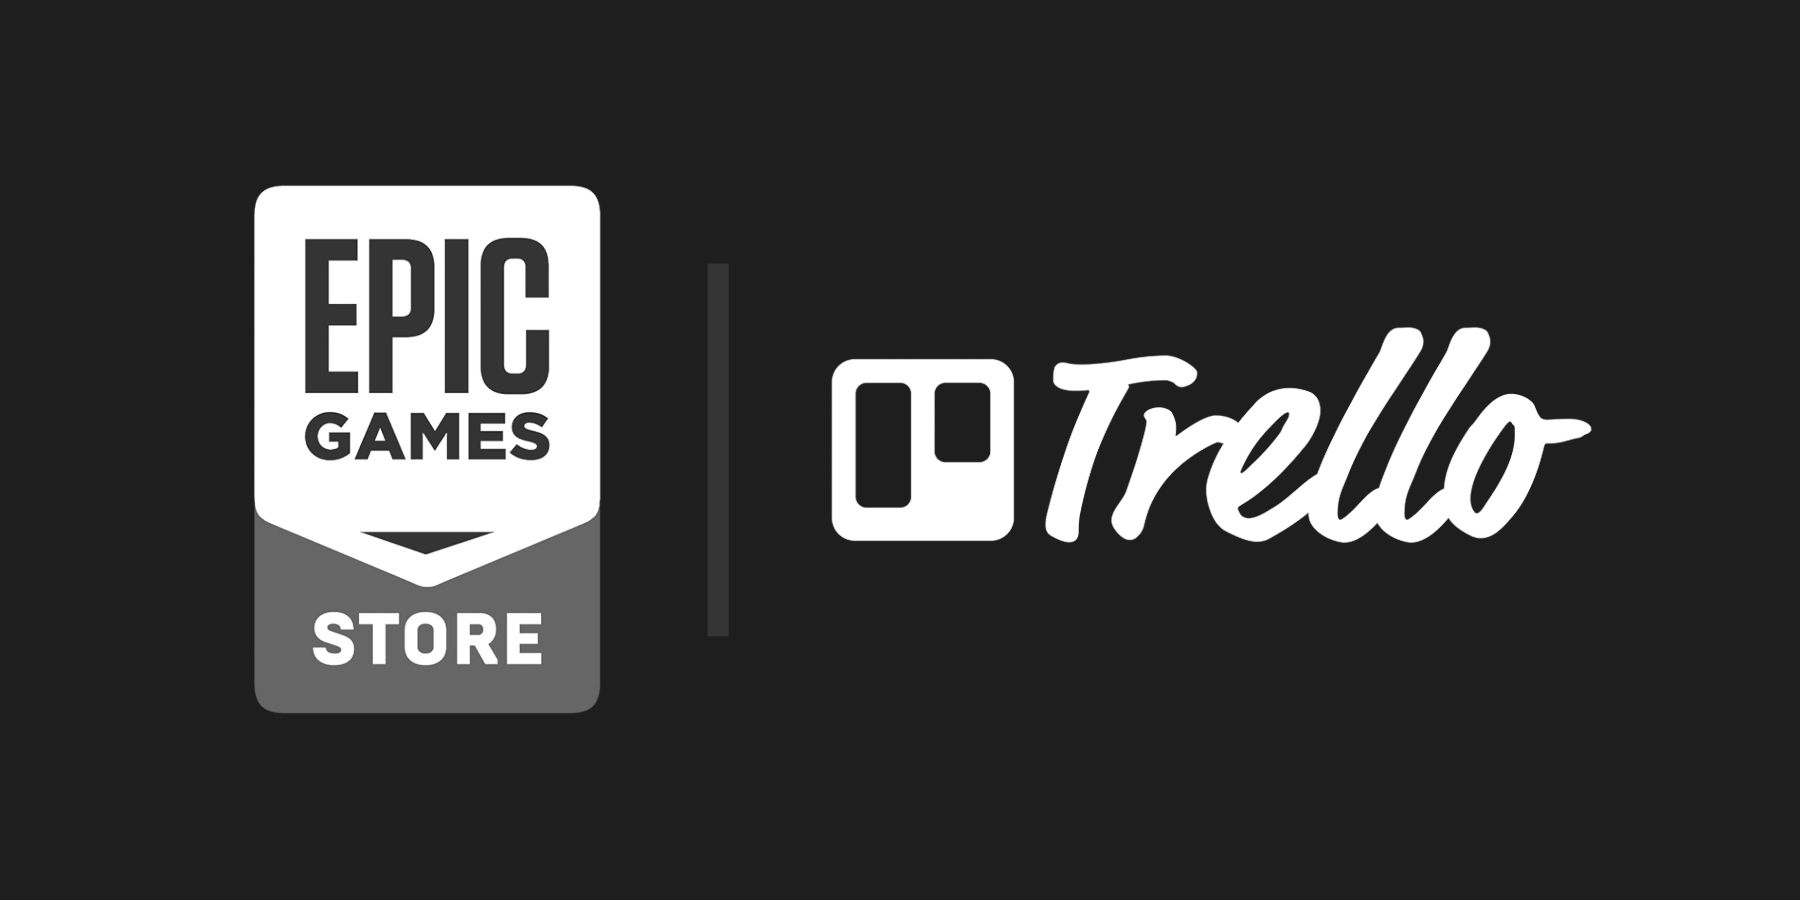 Epic Games Store Working on Wallet System - GameRant